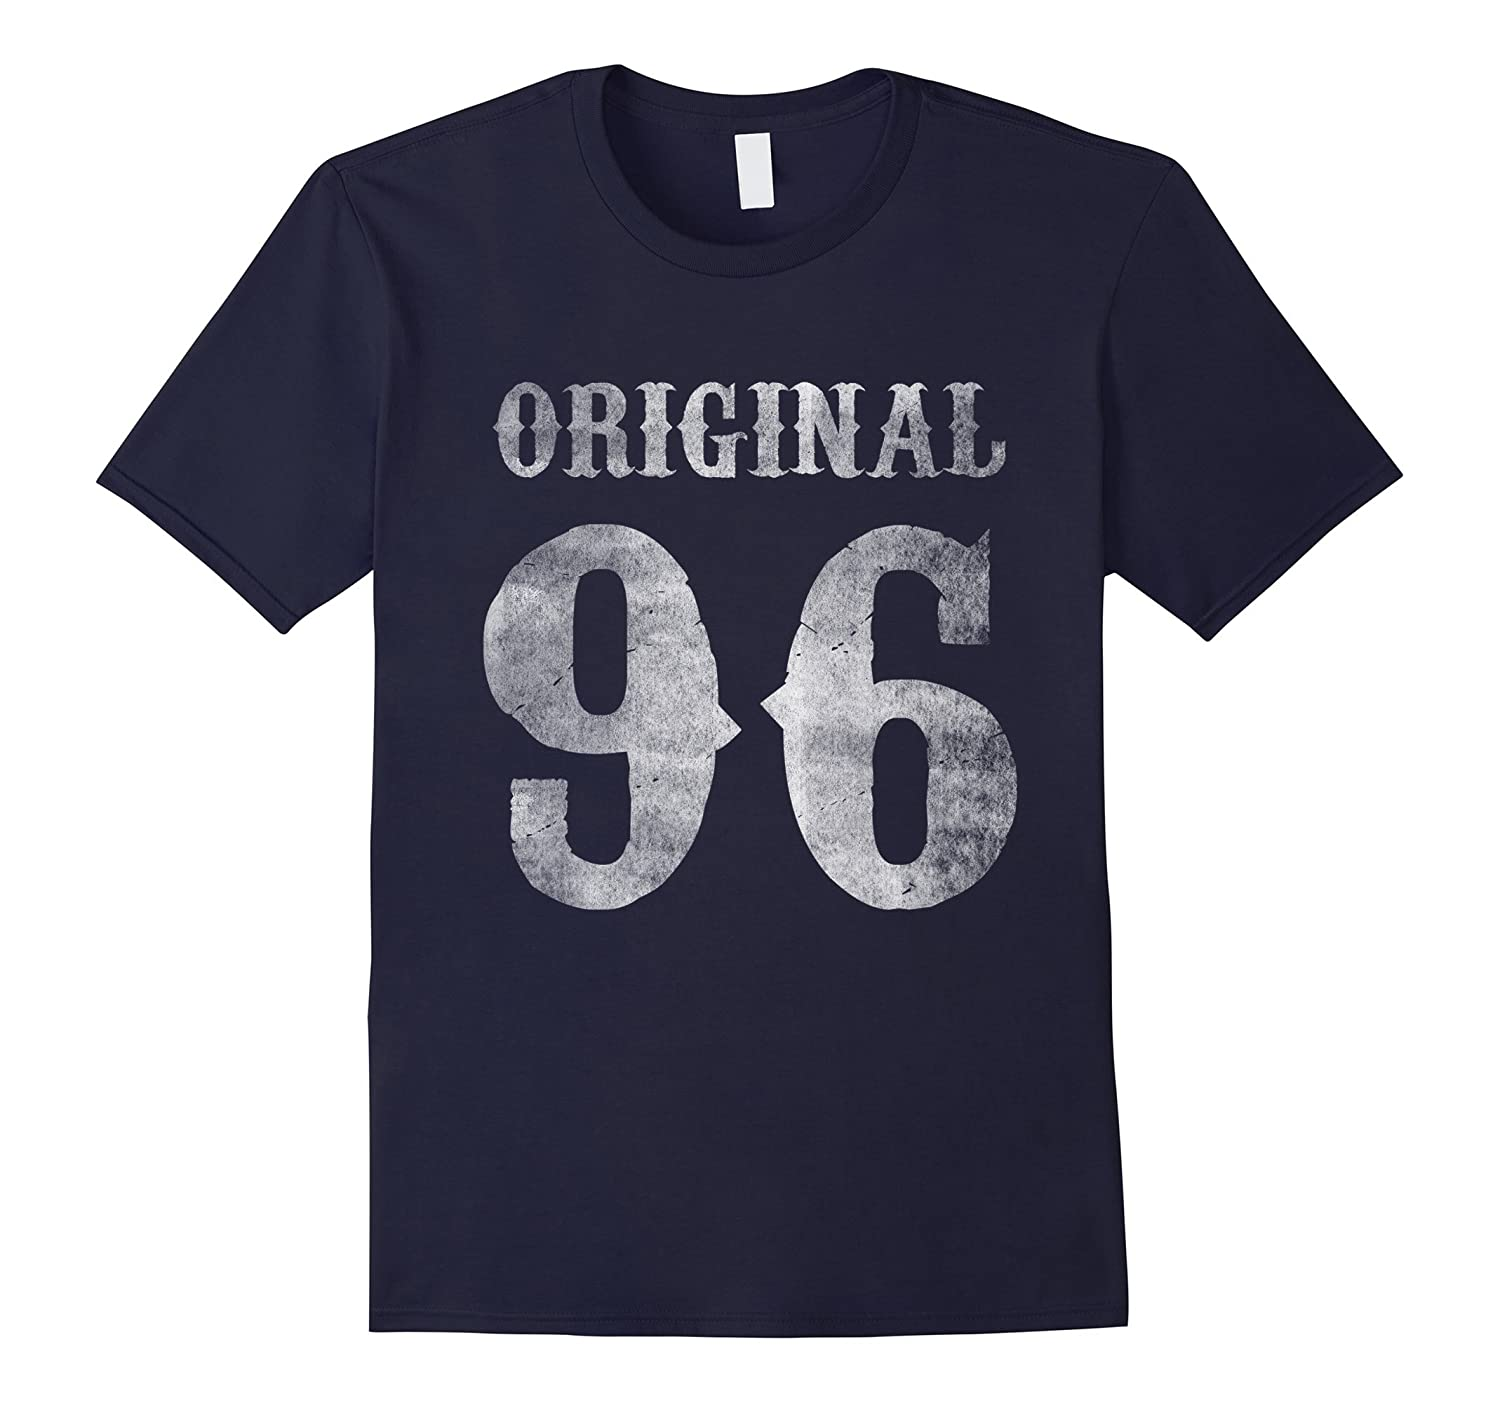 1996 Birthday Vintage T-shirt 96th Birthday Men Women kids-TH